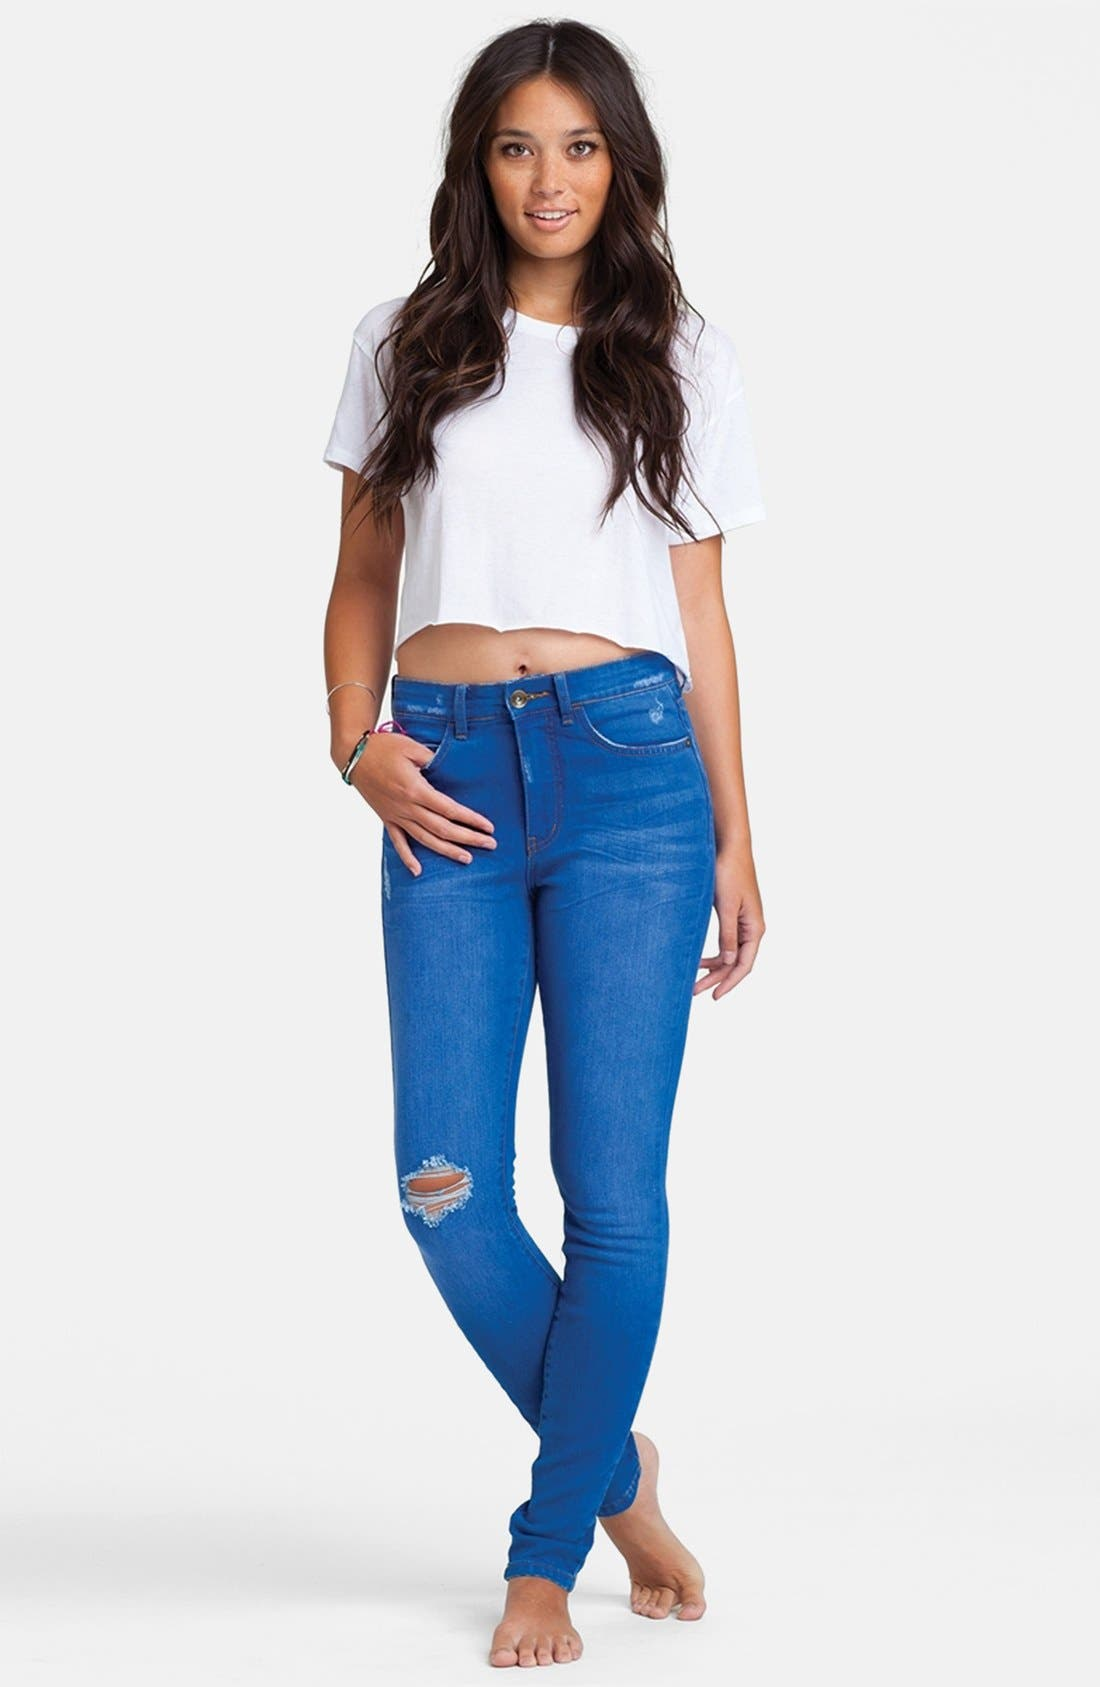 Alternate Image 1 Selected - Billabong 'Night Rider' Destroyed Skinny Jeans (Vivid Blue)